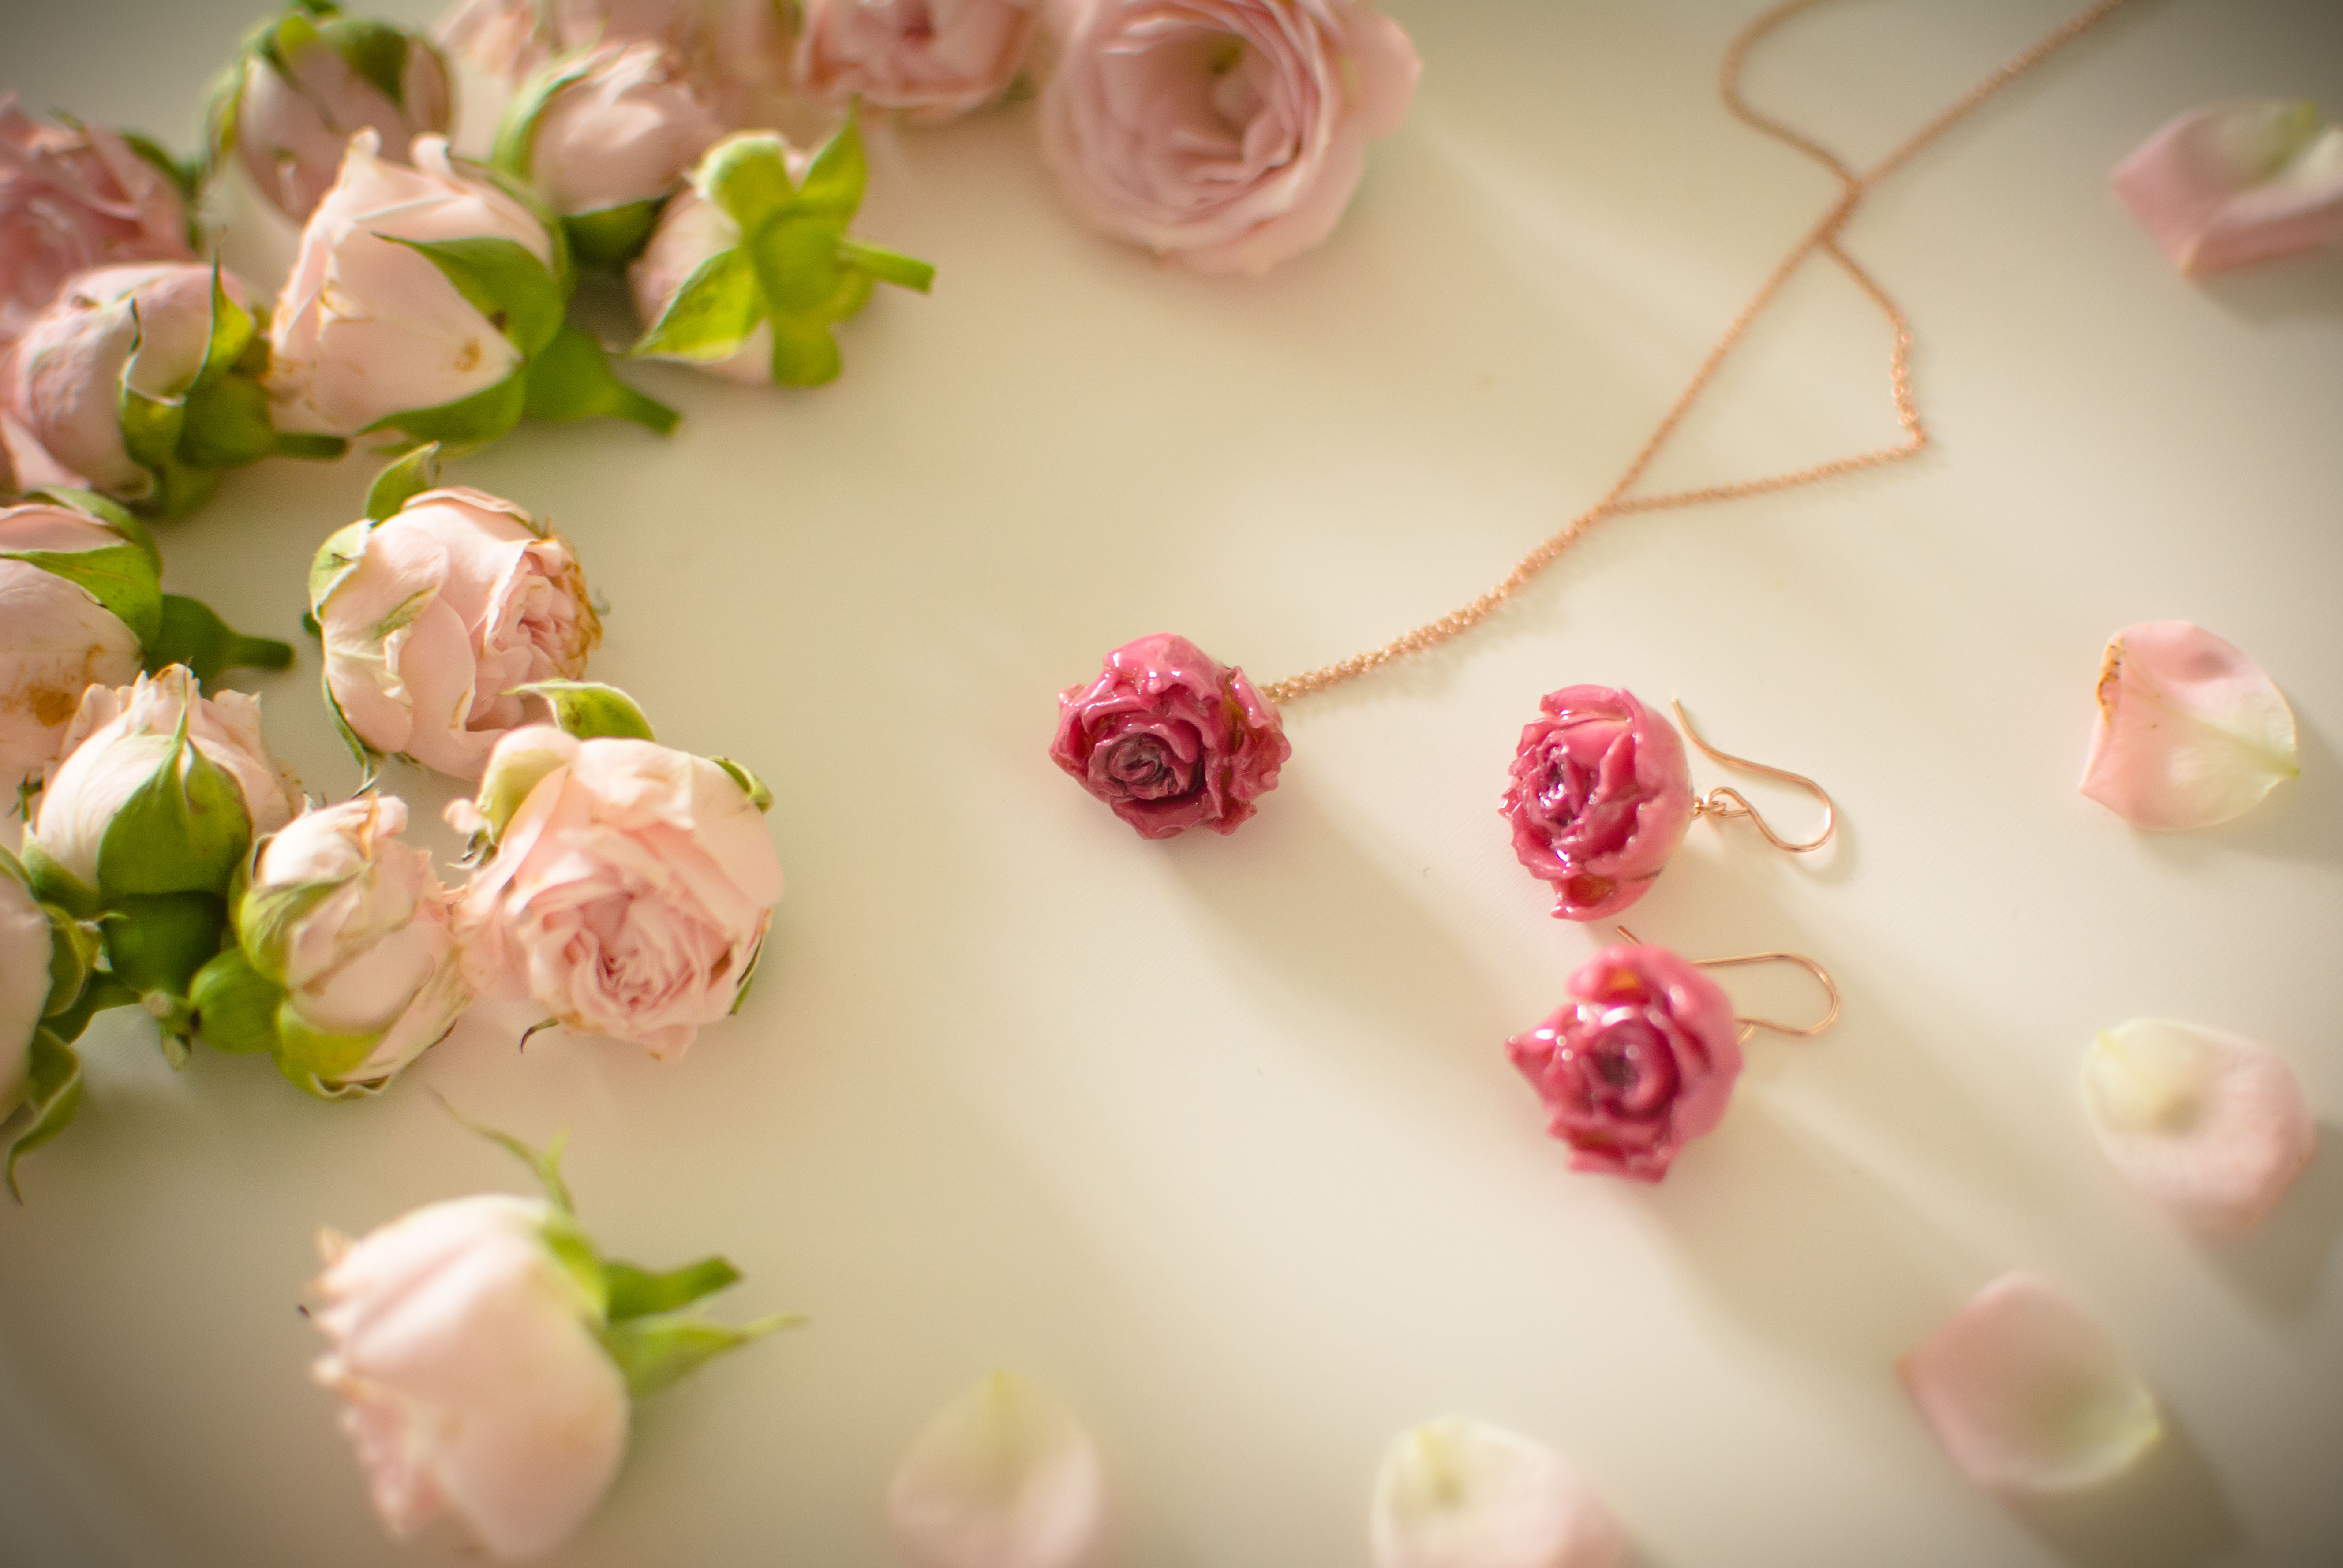 rose earrings and necklace